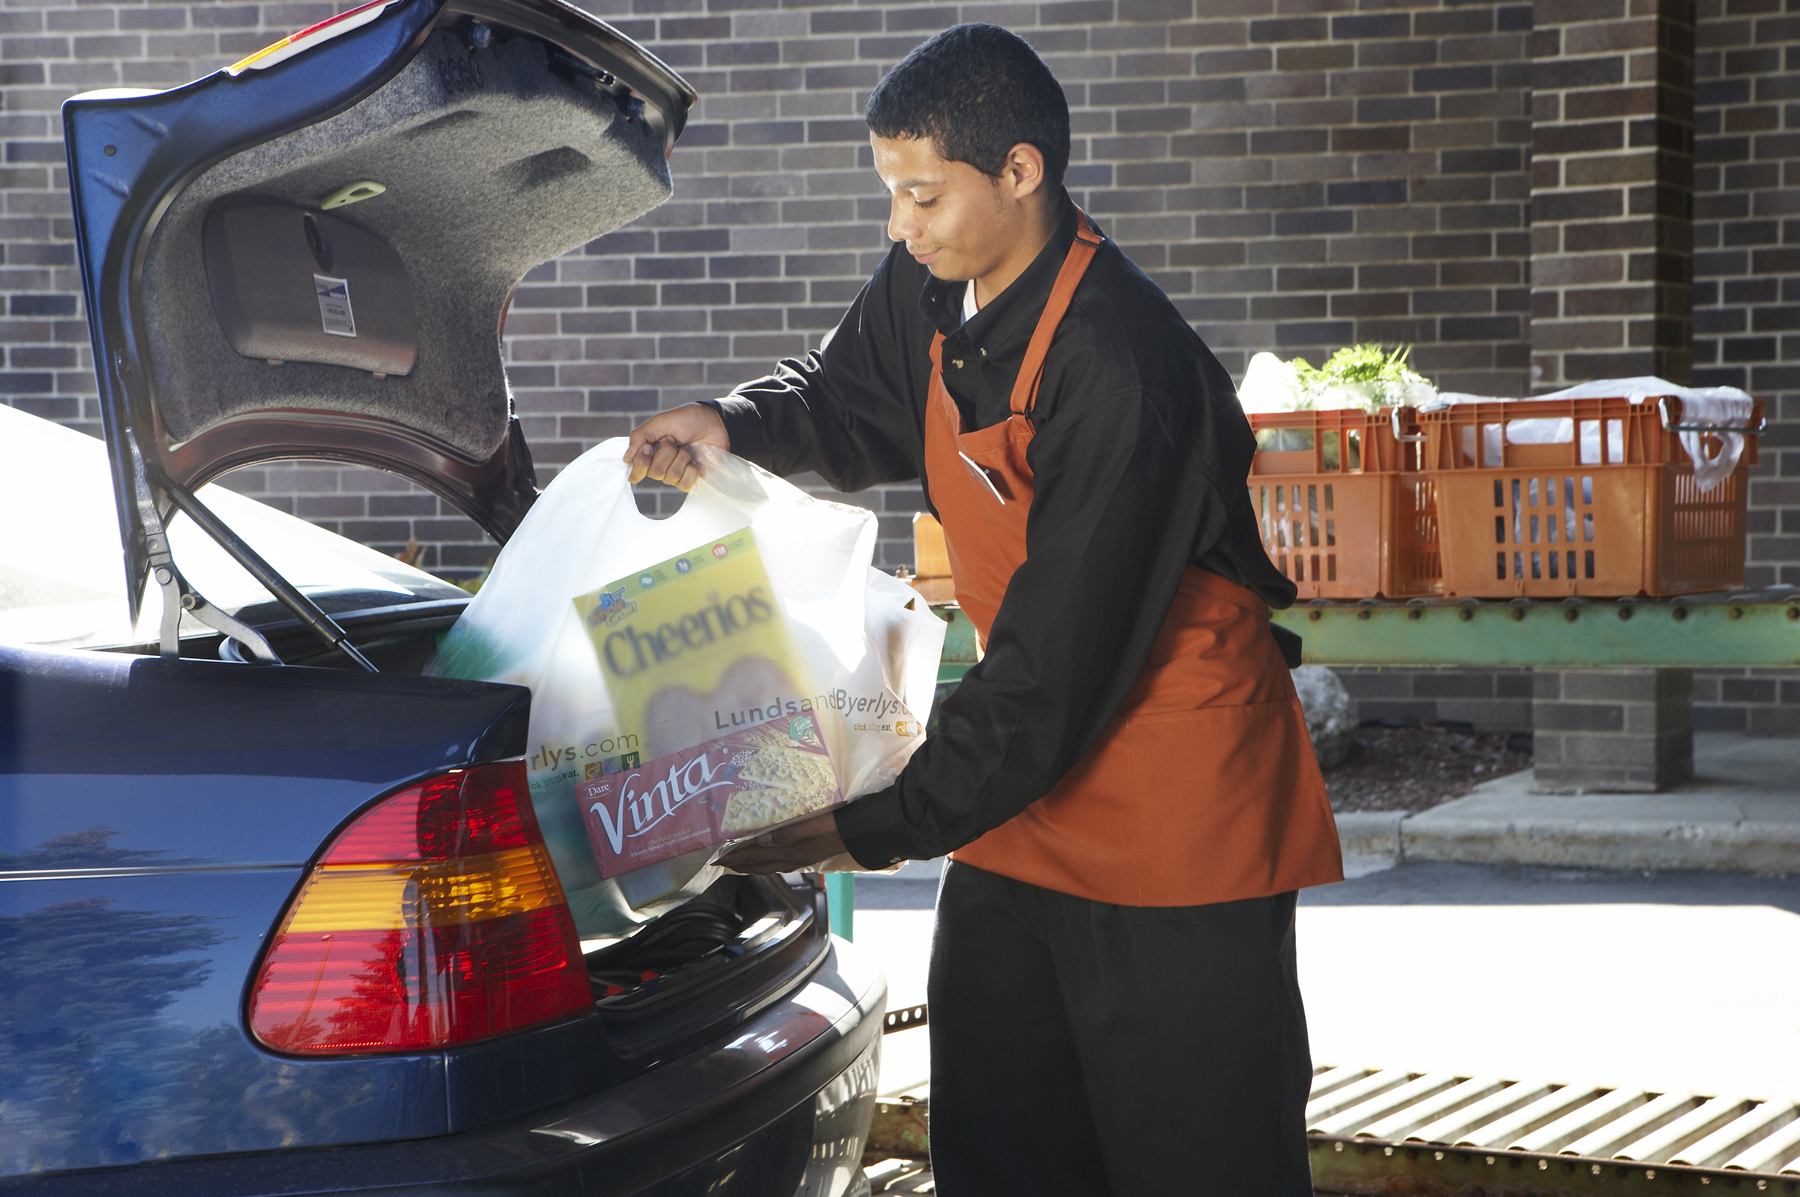 <p>Customers can choose to pick up their online grocery order at select Byerly's supermarkets. During the scheduled delivery time, customers simply drive through the parcel pickup lane designated for online shoppers to receive their orders.</p>